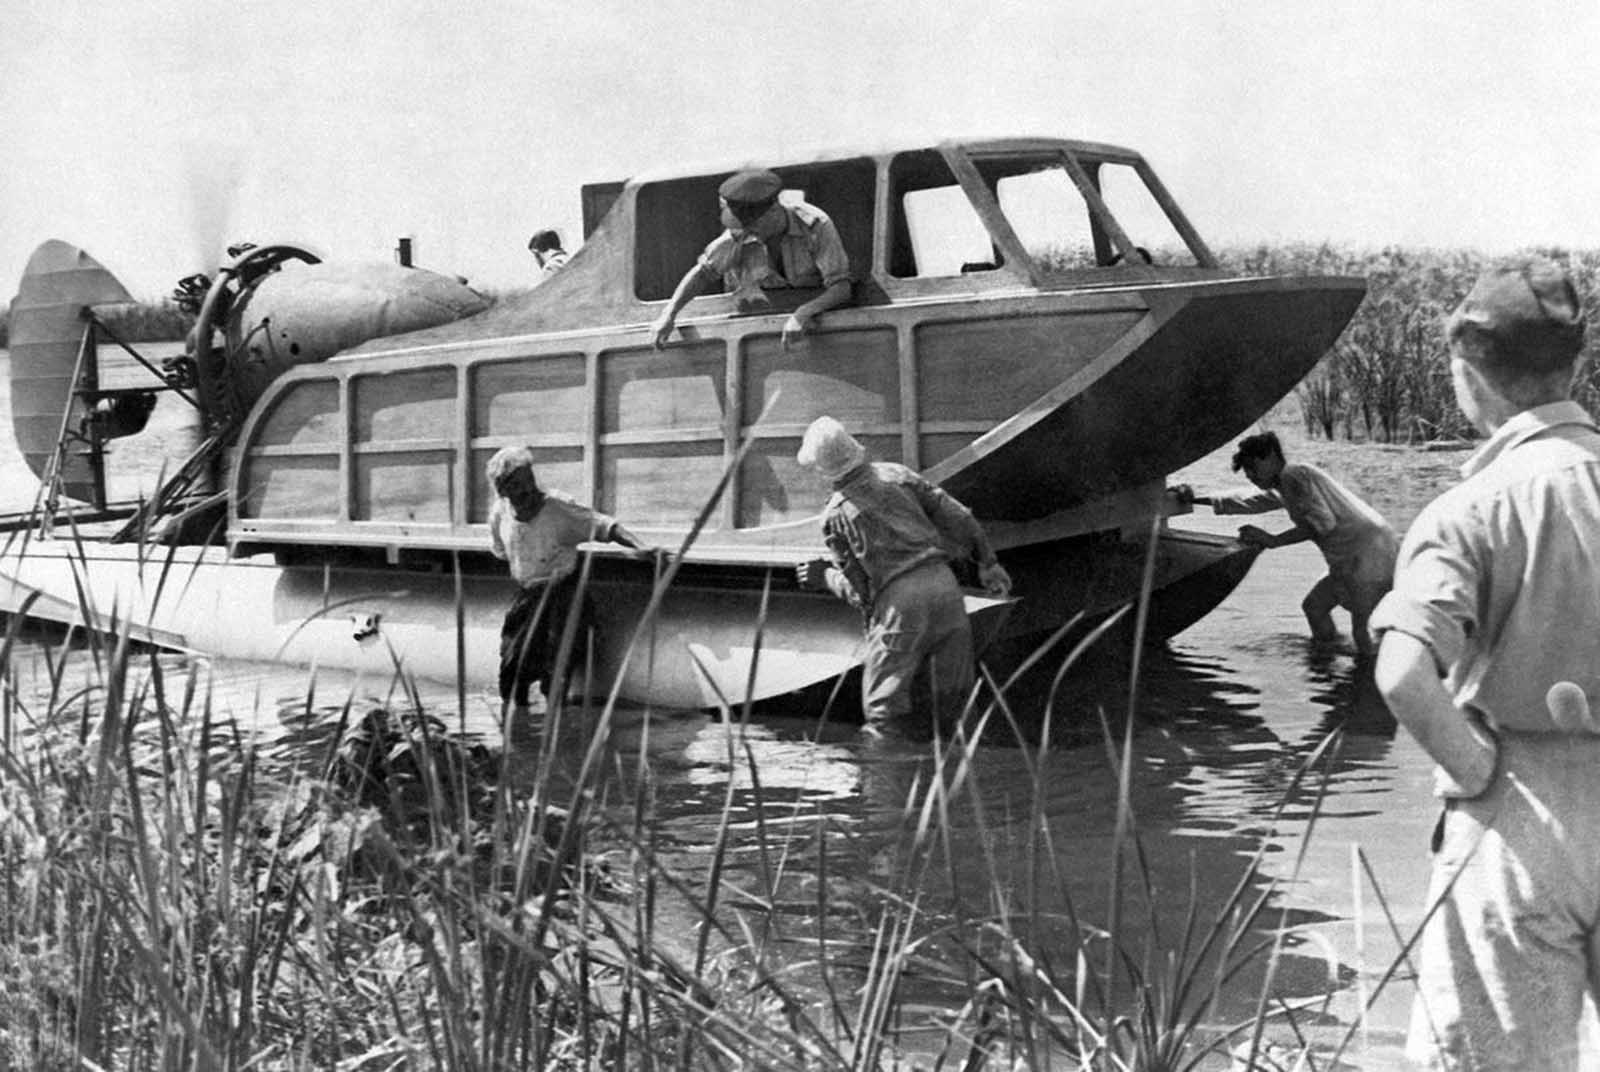 This hydroplane is part of the R.A.F. rescue service in the Middle East. It operates on the lakes of the Nile Delta for the assistance of pilots who may make forced landings in the water. Consisting of a cabin mounted on seaplane flats it is driven by an aircraft engine and propeller mounted in the stern and steered by an aircraft rudder. There are also rudders on each of the floats. The top speed of the craft is about fifteen knots. Photo taken on March 11, 1942.